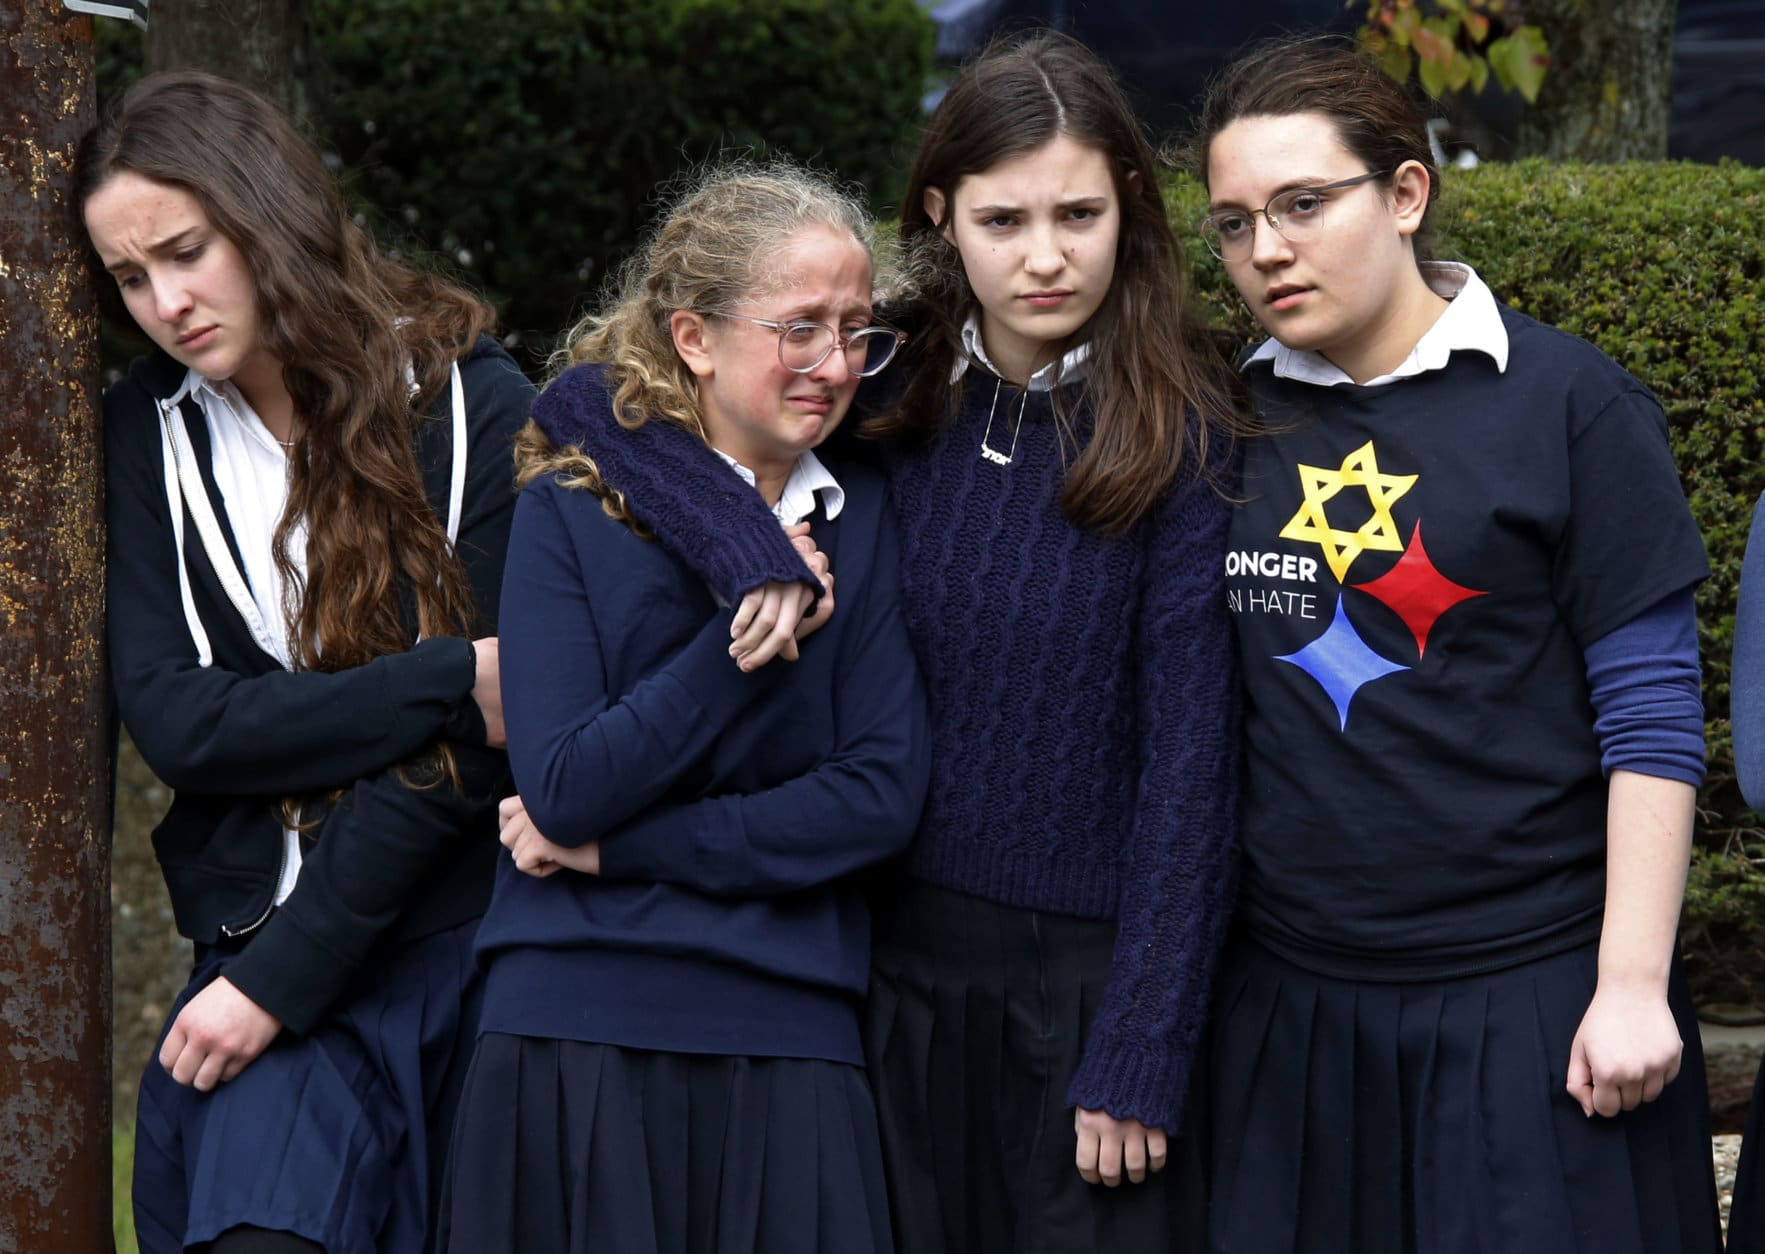 Students from the Yeshiva School in the Squirrel Hill neighborhood of Pittsburgh pay their respects as the funeral procession for Dr. Jerry Rabinowitz passes their school en route to Homewood Cemetery on Oct. 30, 2018, following a funeral service at the Jewish Community Center. Rabinowitz was one of several people killed in a mass shooting while worshipping at the Tree of Life synagogue three days earlier. (AP Photo/Gene J. Puskar)